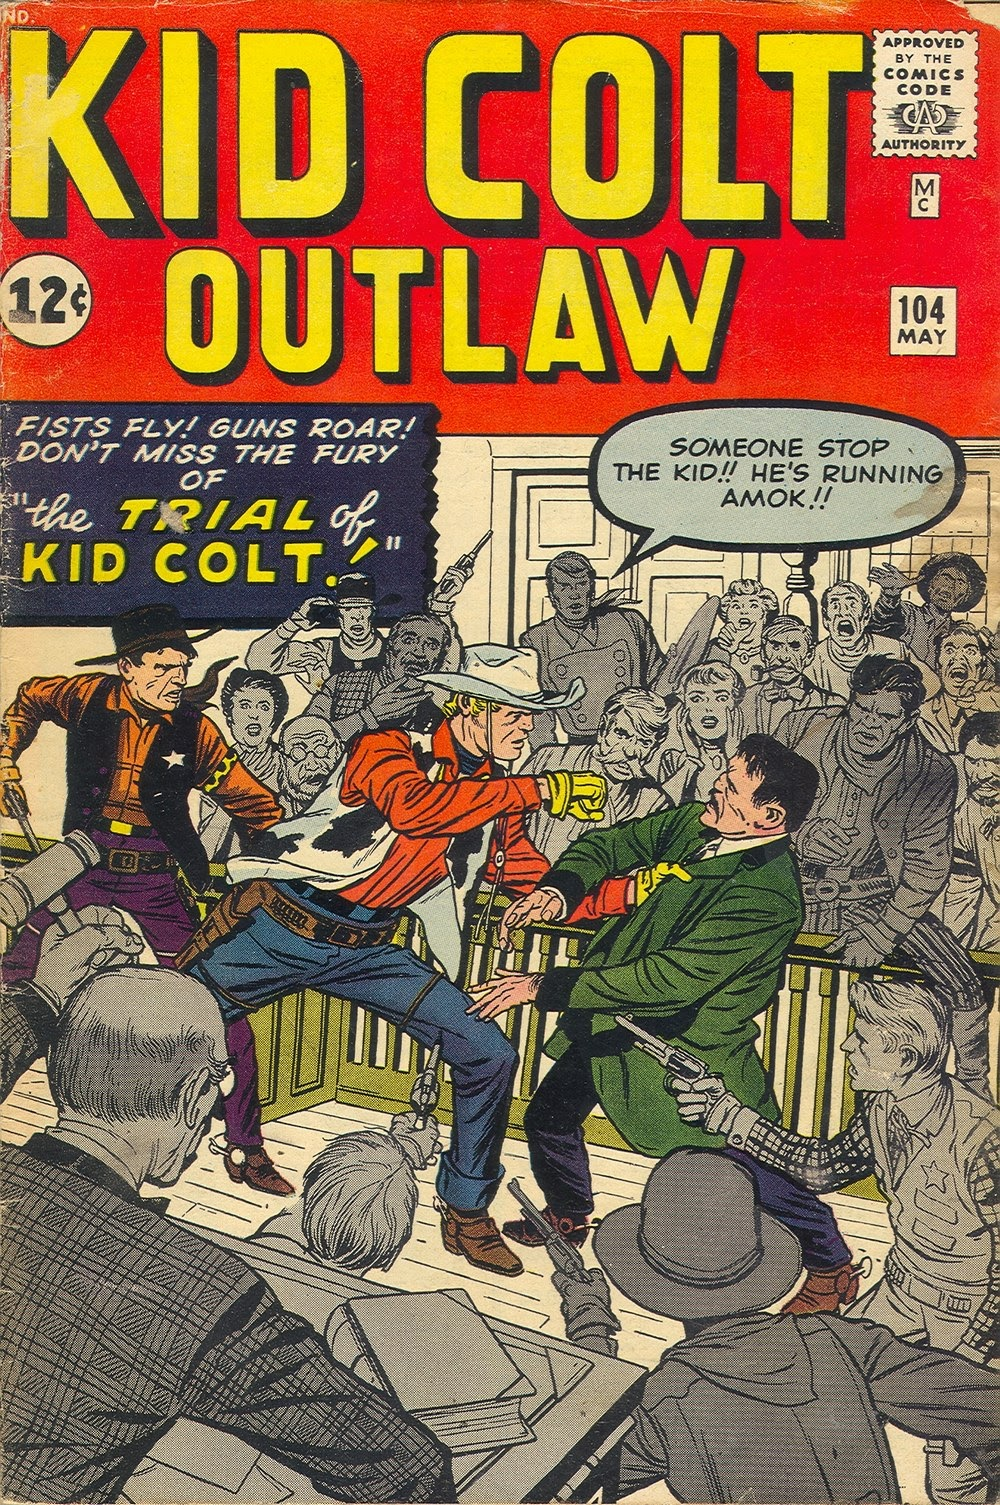 Kid Colt Outlaw issue 104 - Page 1